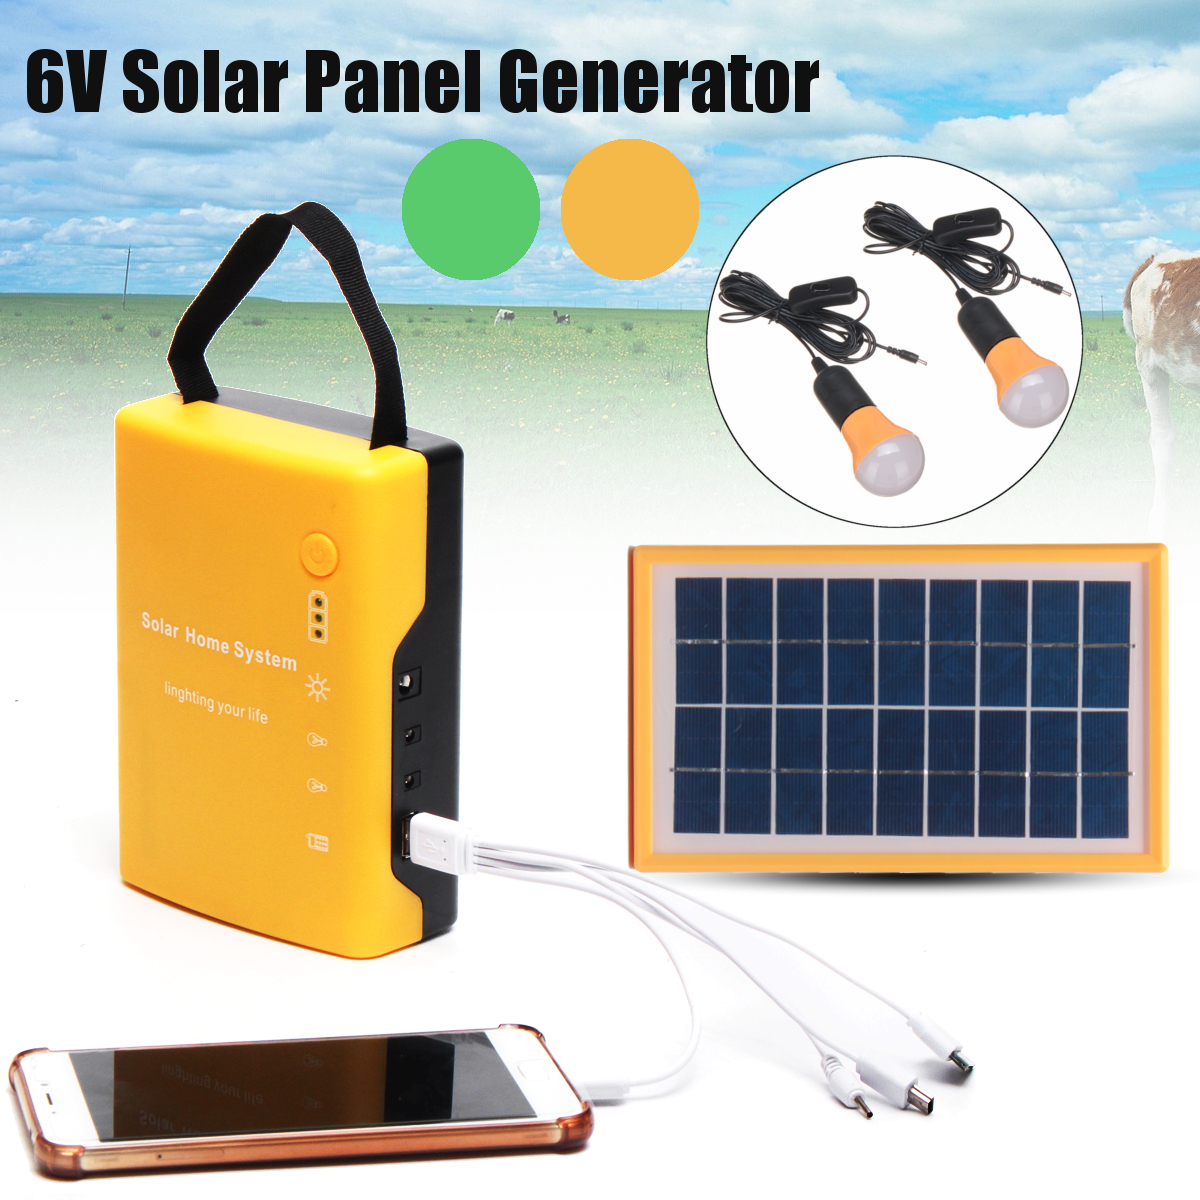 4.5Ah/6V Portable Home Outdoor Solar Panel Power Generator USB Cable Charge Emergency Batteries lead acid LED Light System portable home outdoor solar panels charging generator power generation system 6v 3w lead acid batteries energy usb charger